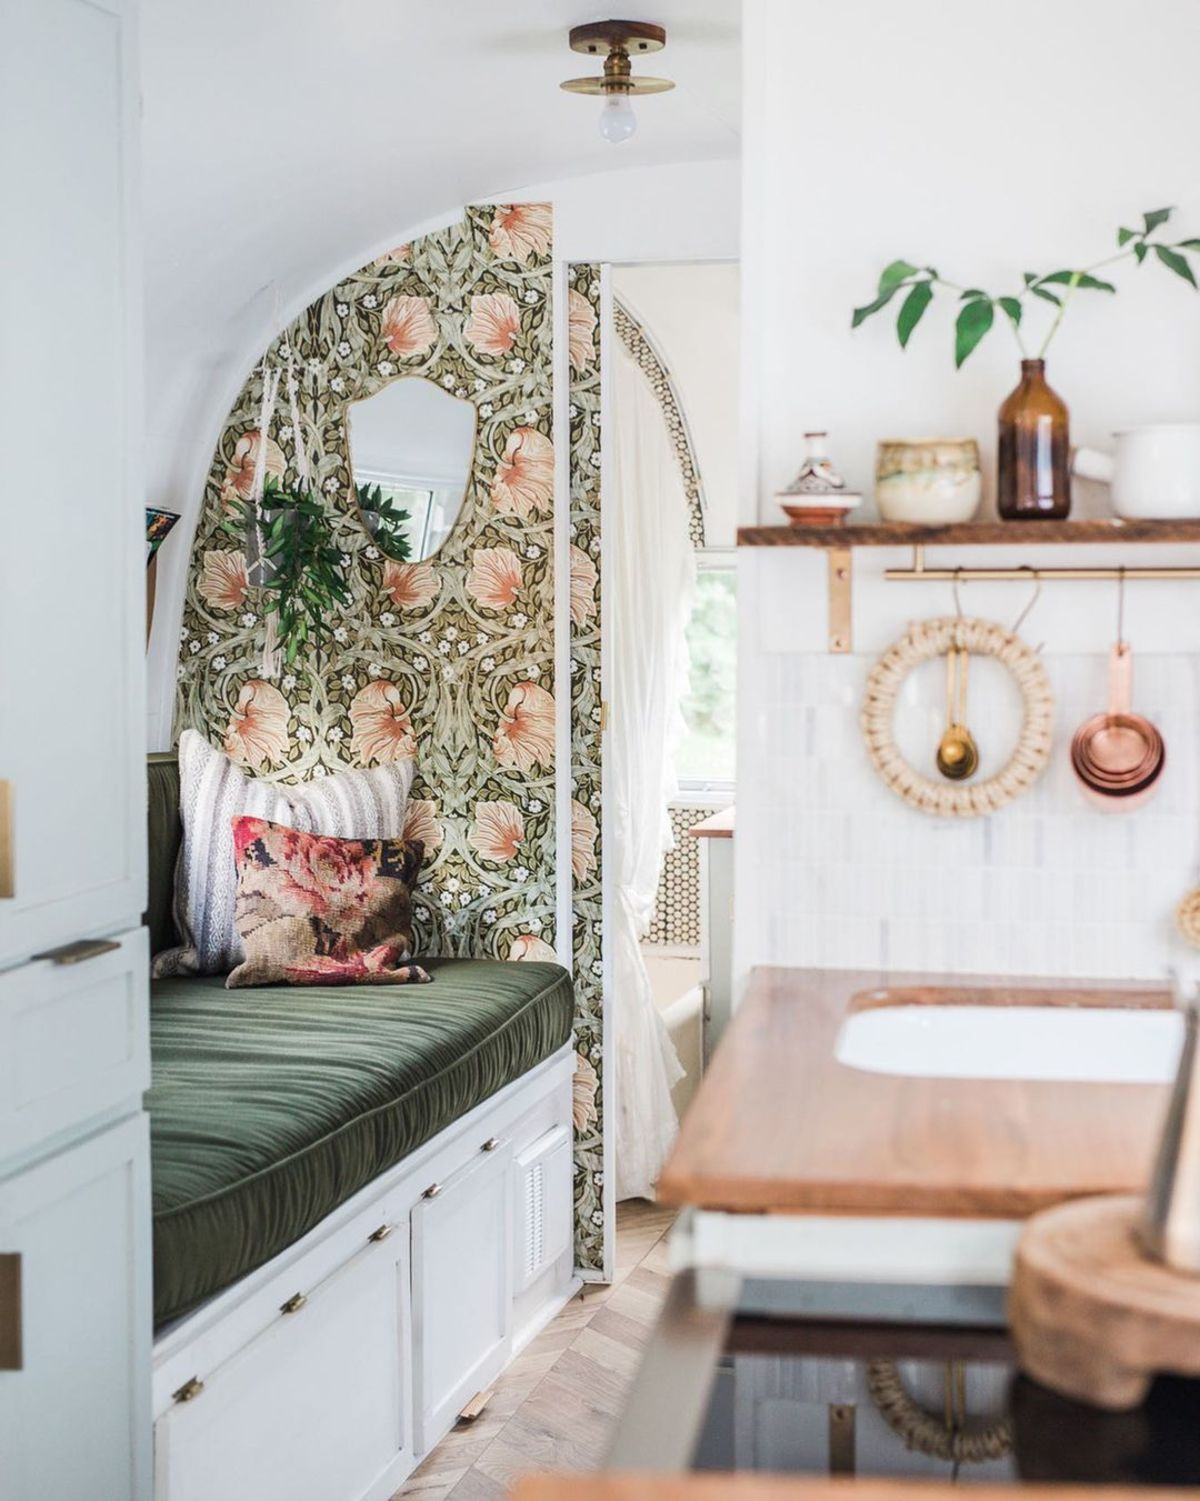 airtsream trailer marjorie 25 - This renovated Airstream trailer is all floral and boho-chic charm